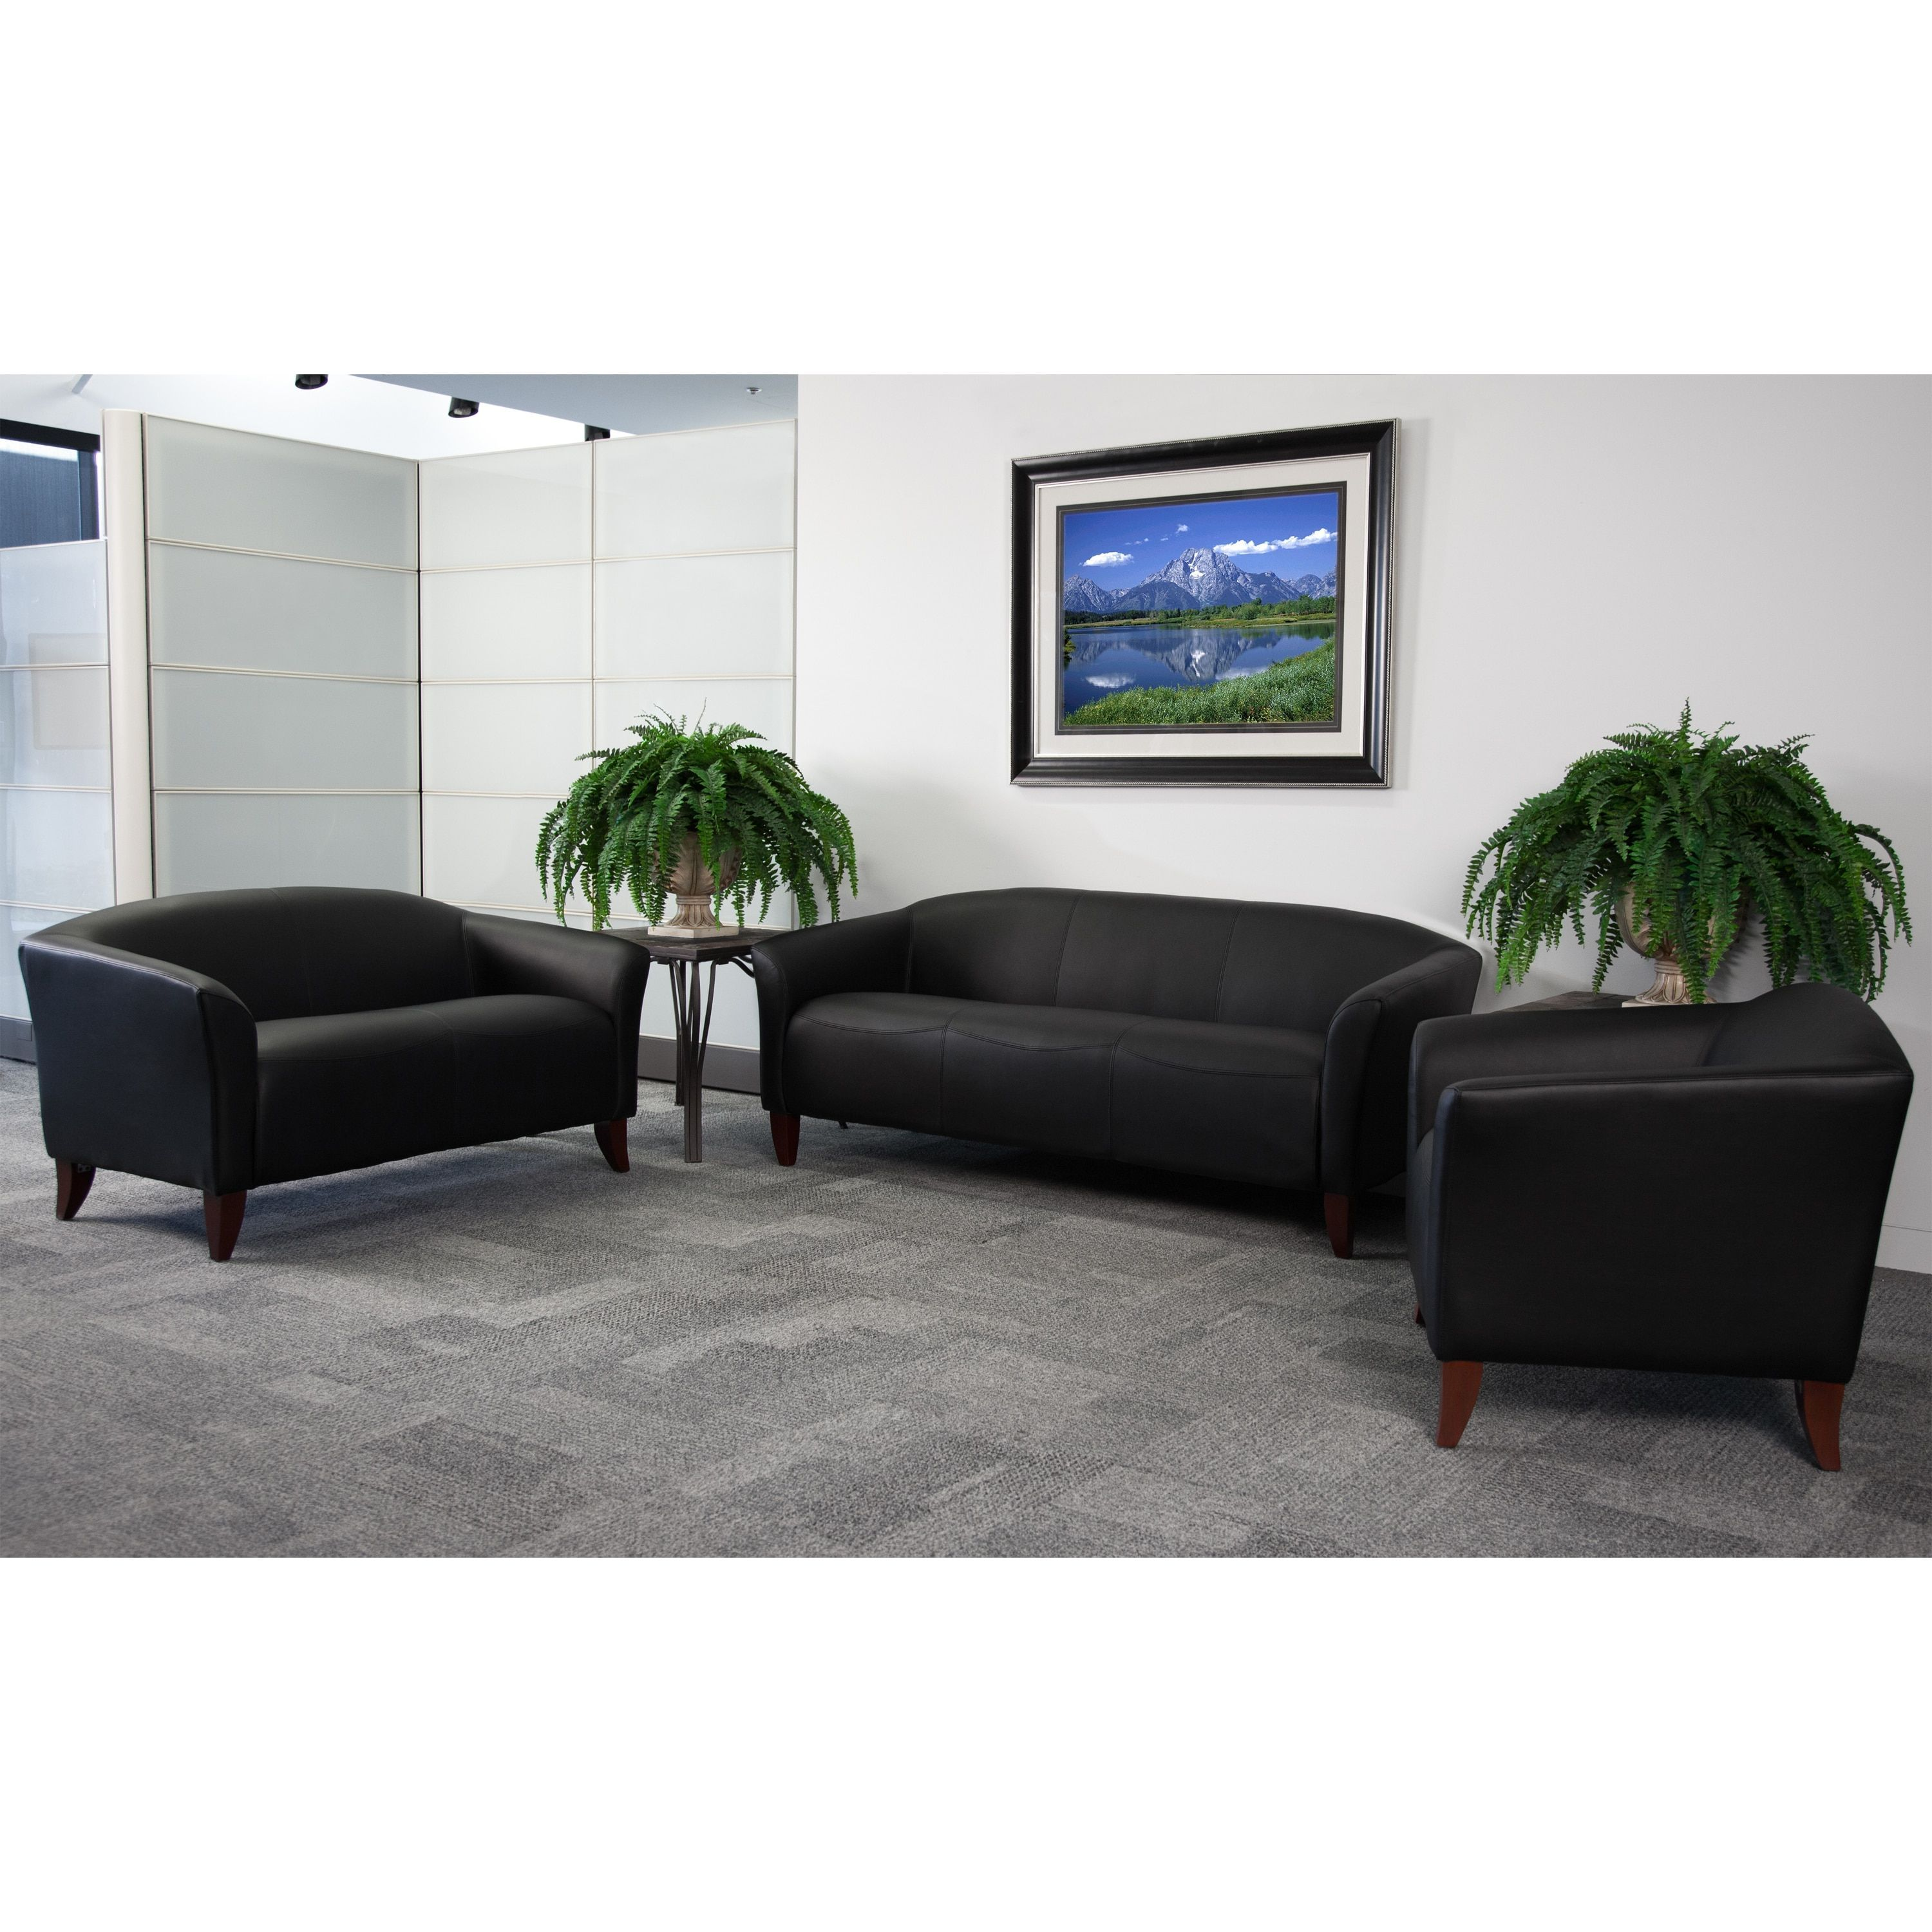 3 piece black leather living room set ceiling light in allison contemporary